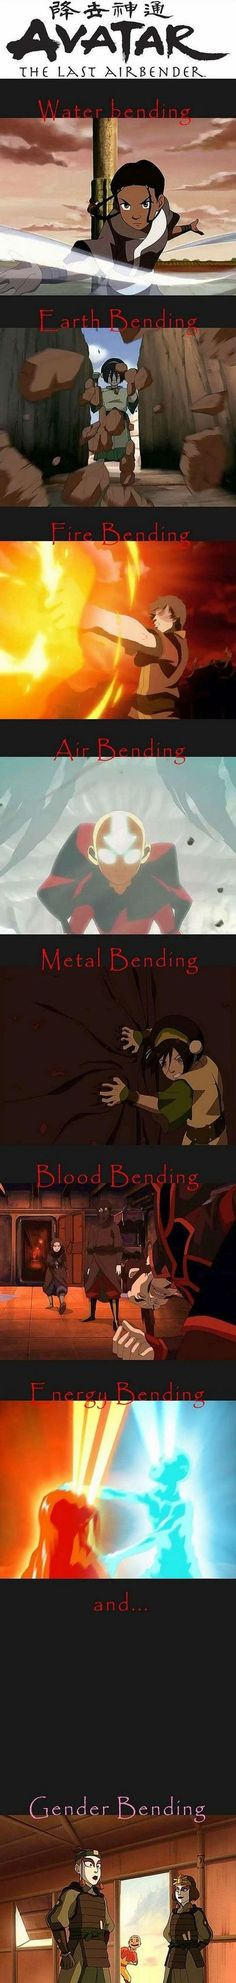 "Different Types of Bending In Avatar... ""Nice dress, Sokka"" gender bending.lol"